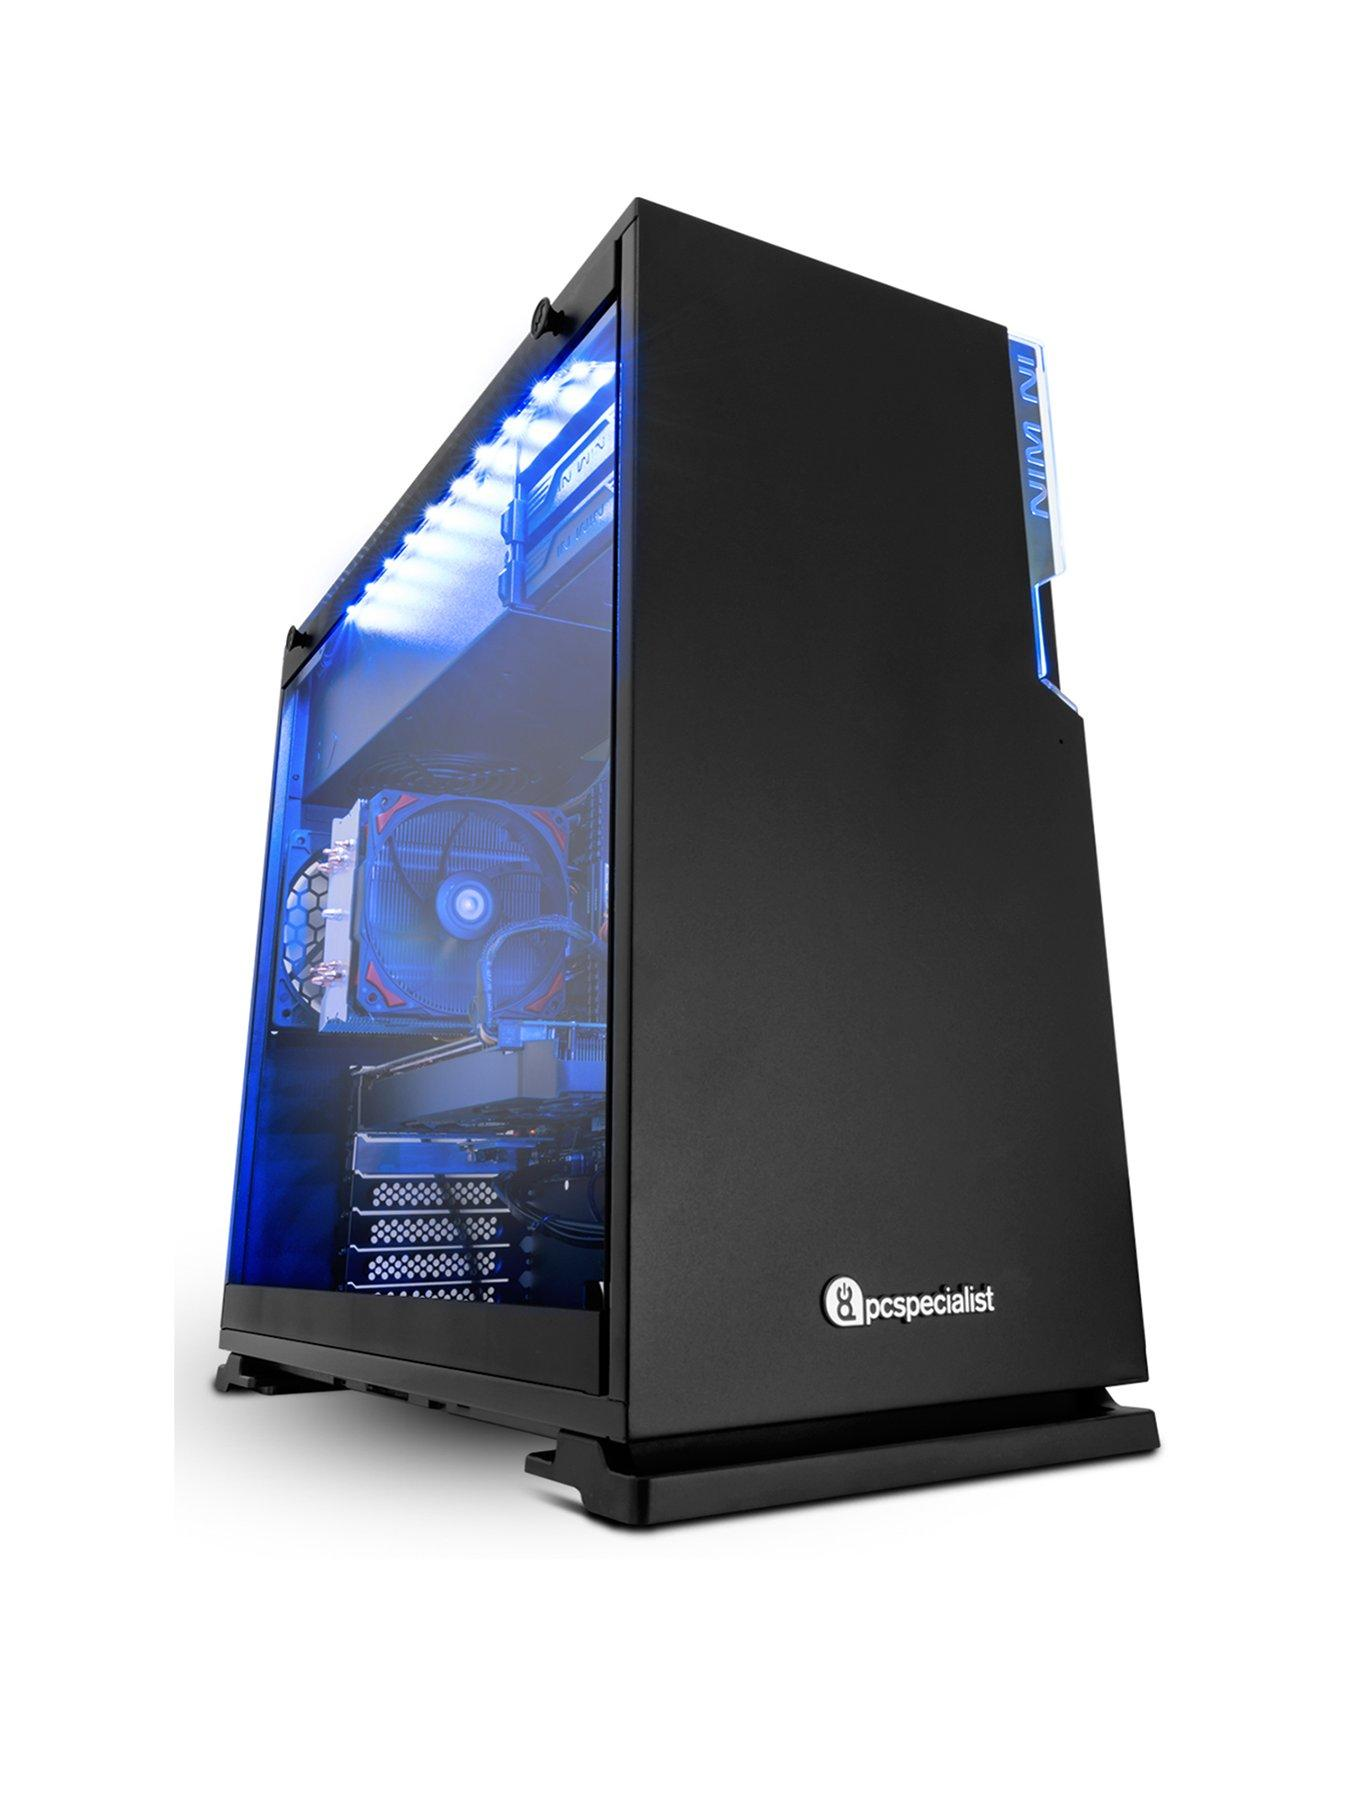 PC Specialist Stalker Pro VR Intel® Core™ i7 Processor,GeForce GTX 1060 Graphics,8GbRAM,1TbHDD&120GbSSD, Gaming PCwith Gaming Software Pack